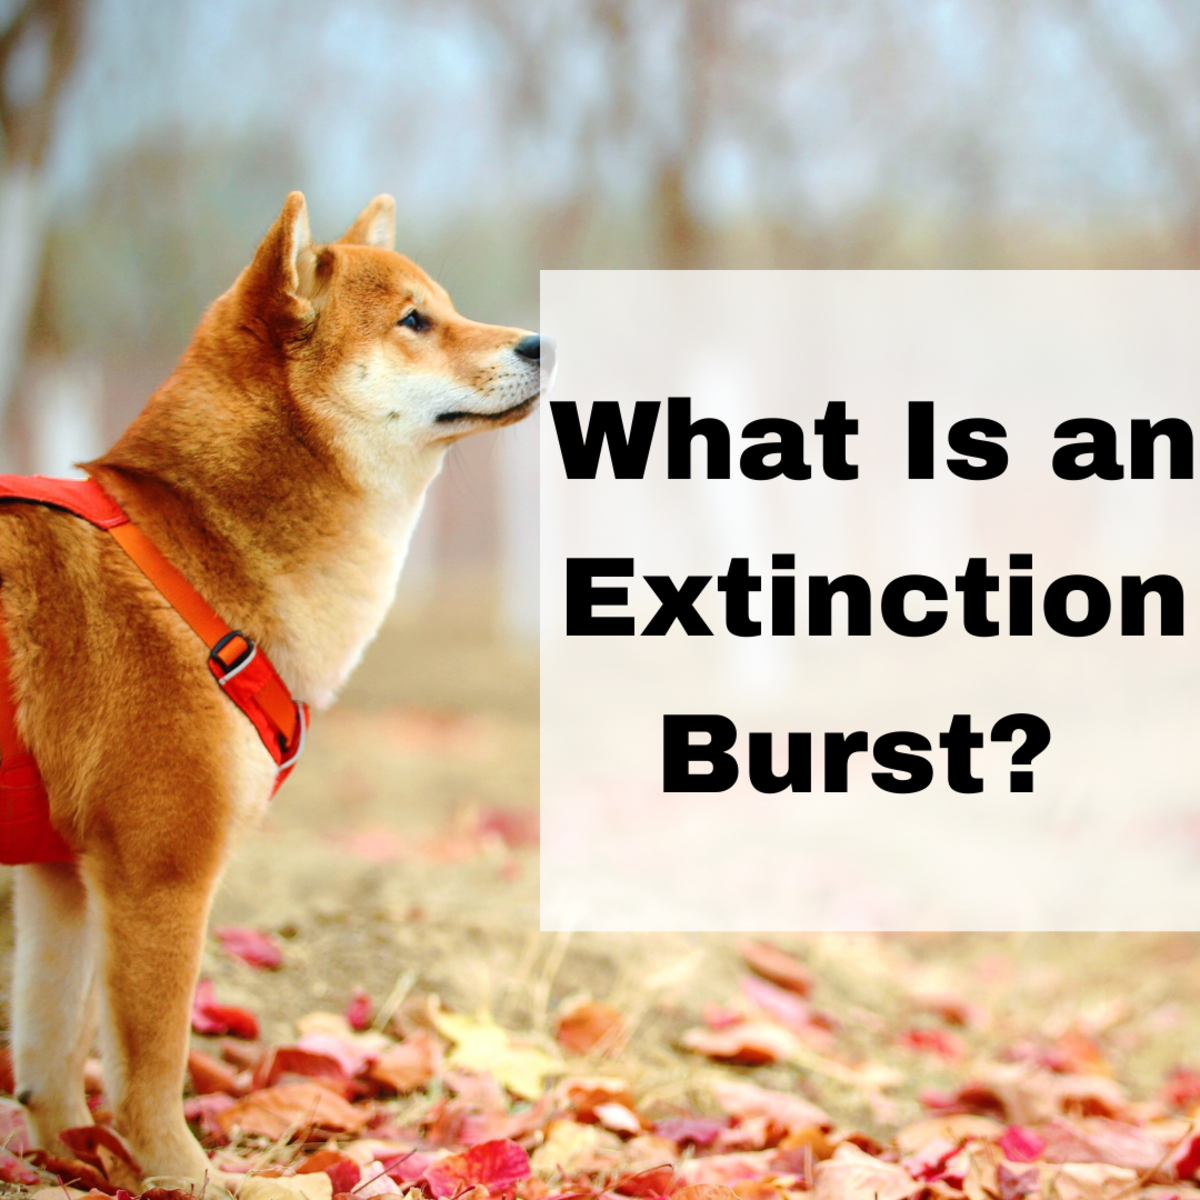 Learn all about extinction bursts in this article.